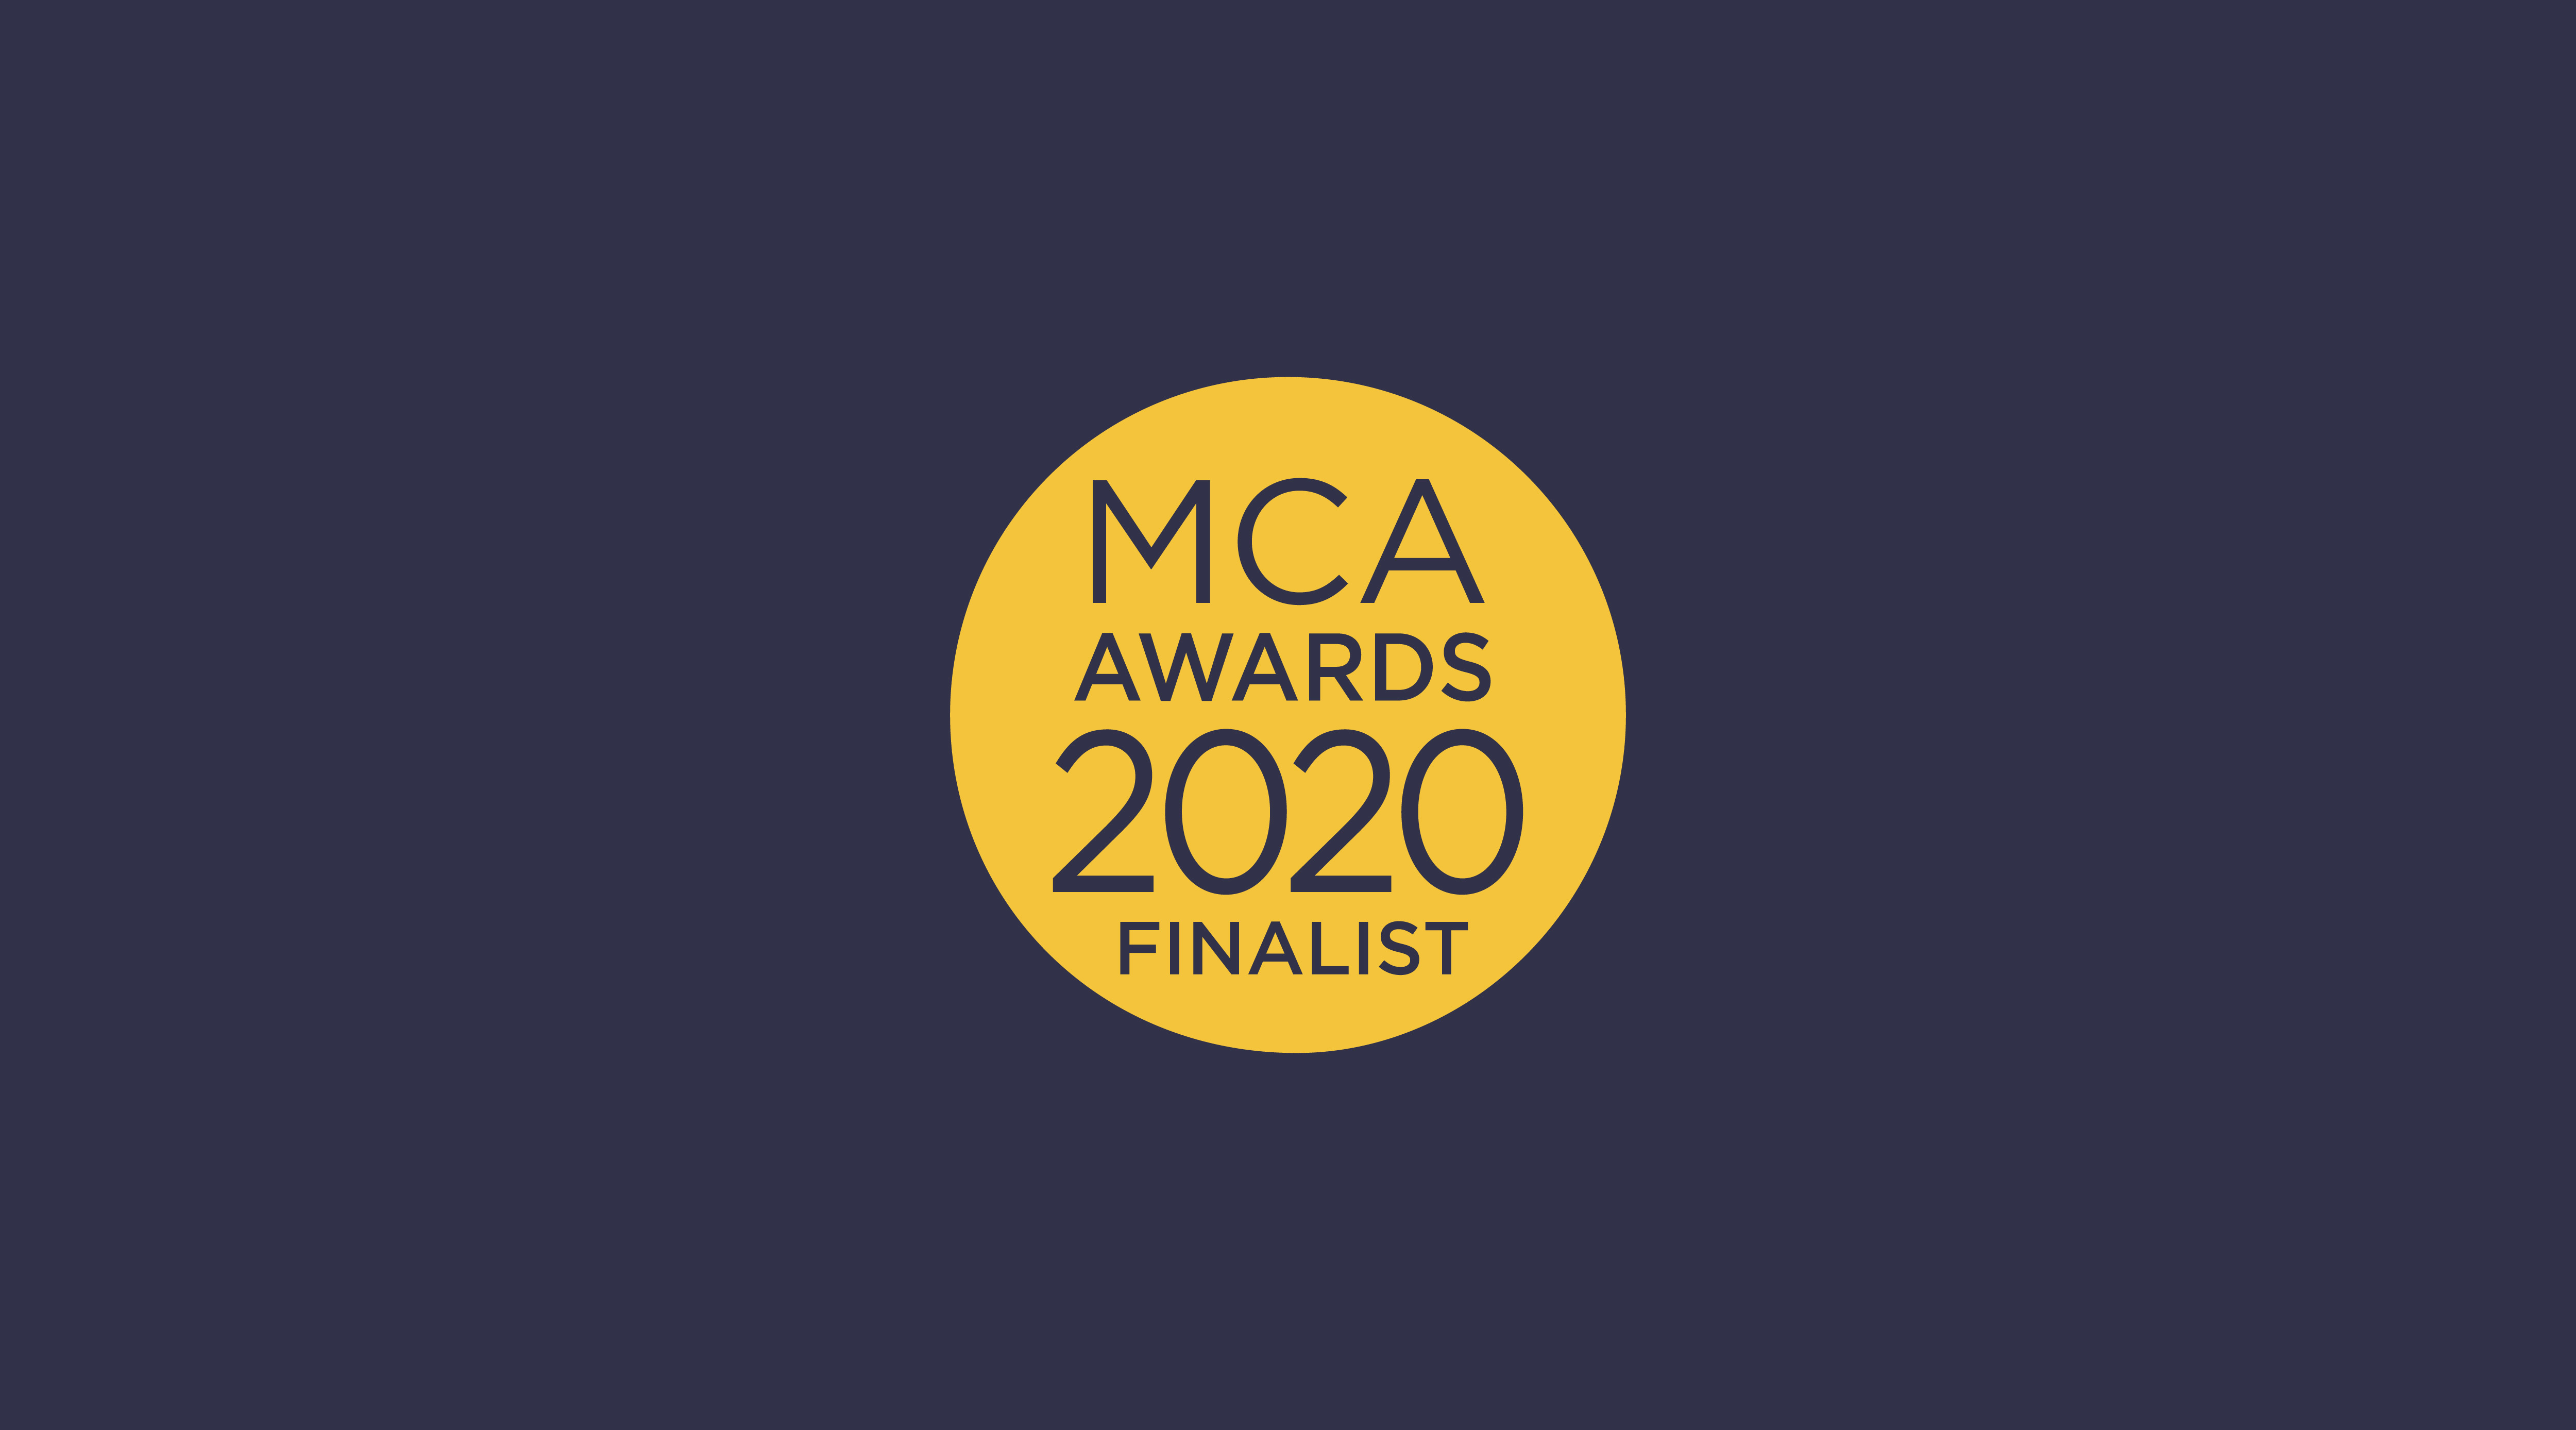 MCA Awards Finalists 2020